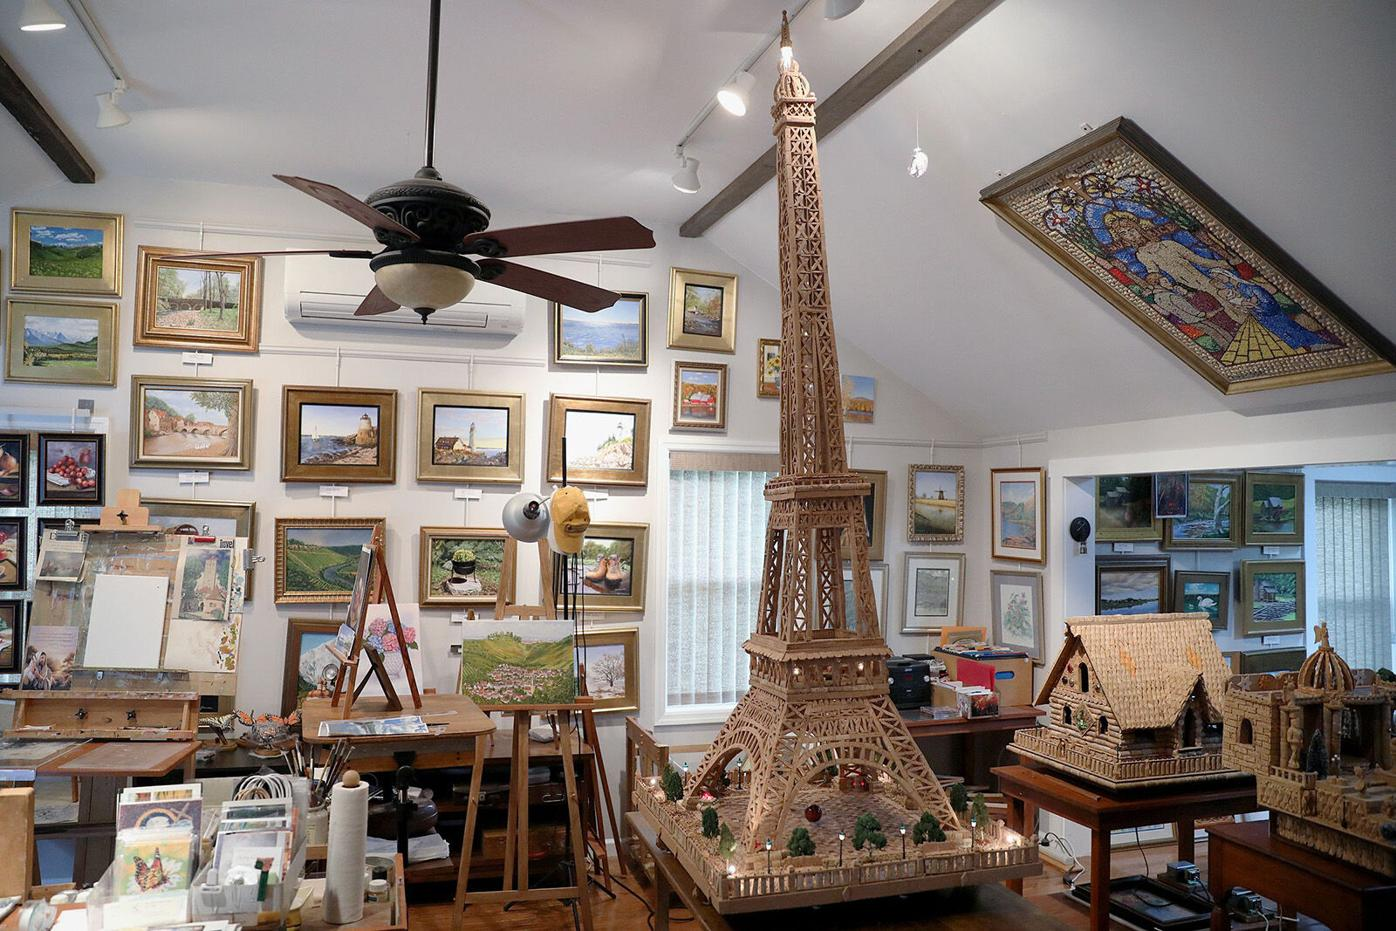 92-year-old artist uses 2,000 wine corks to recreate the Eiffel Tower — while battling leukemia